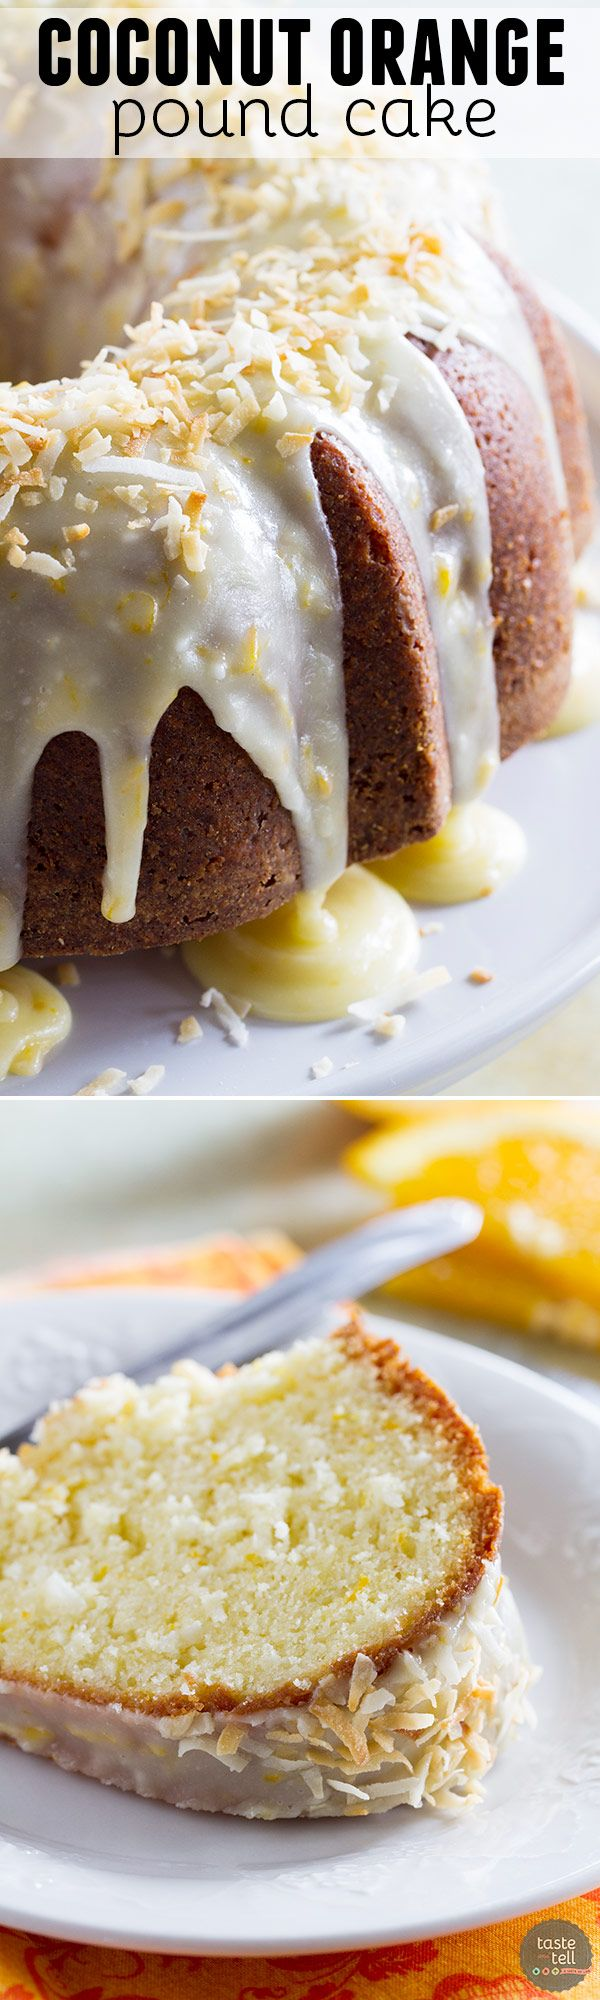 Rich and full of orange and coconut flavors, this Coconut Orange Pound Cake takes a classic recipe and gives it is tropical makeover.: